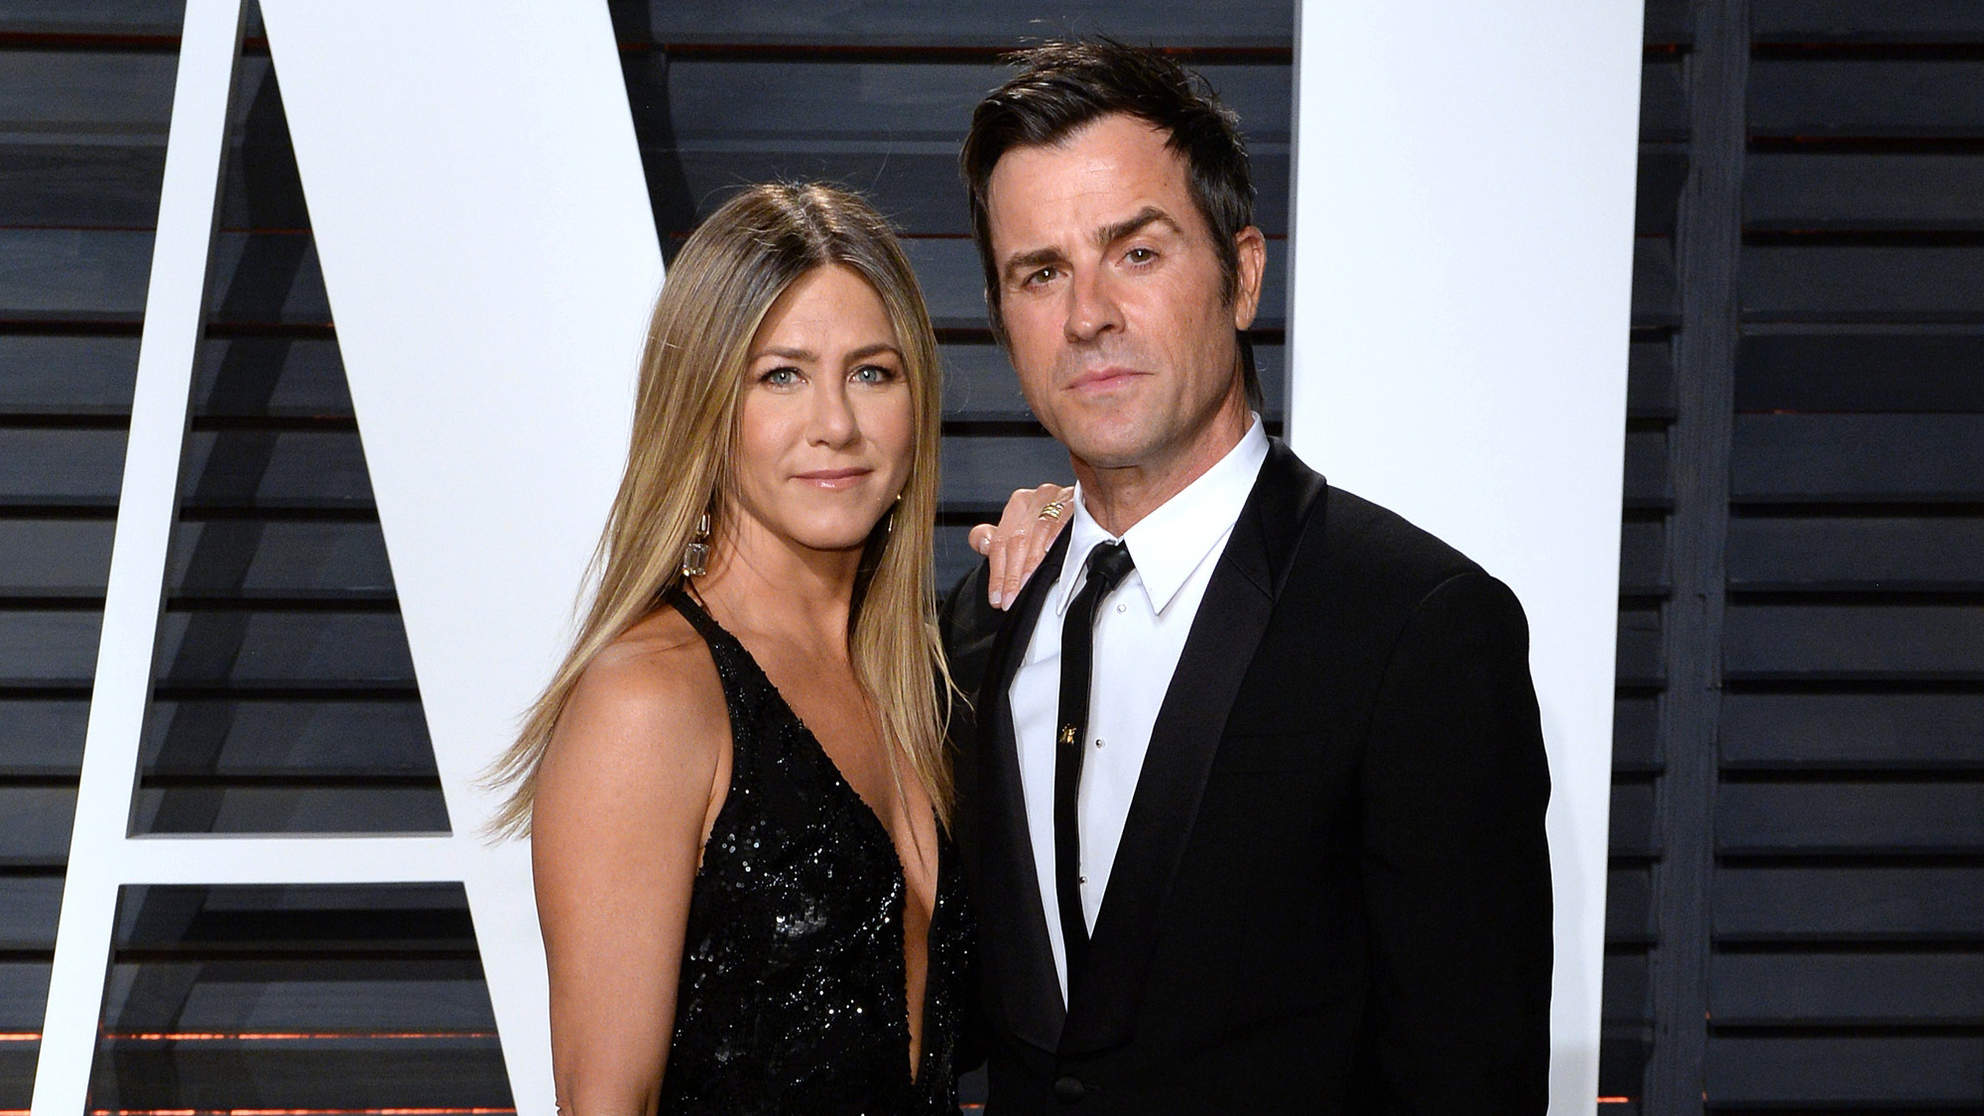 Jennifer Aniston and Justin Theroux Split 'Lovingly' After Two Years of Marriage